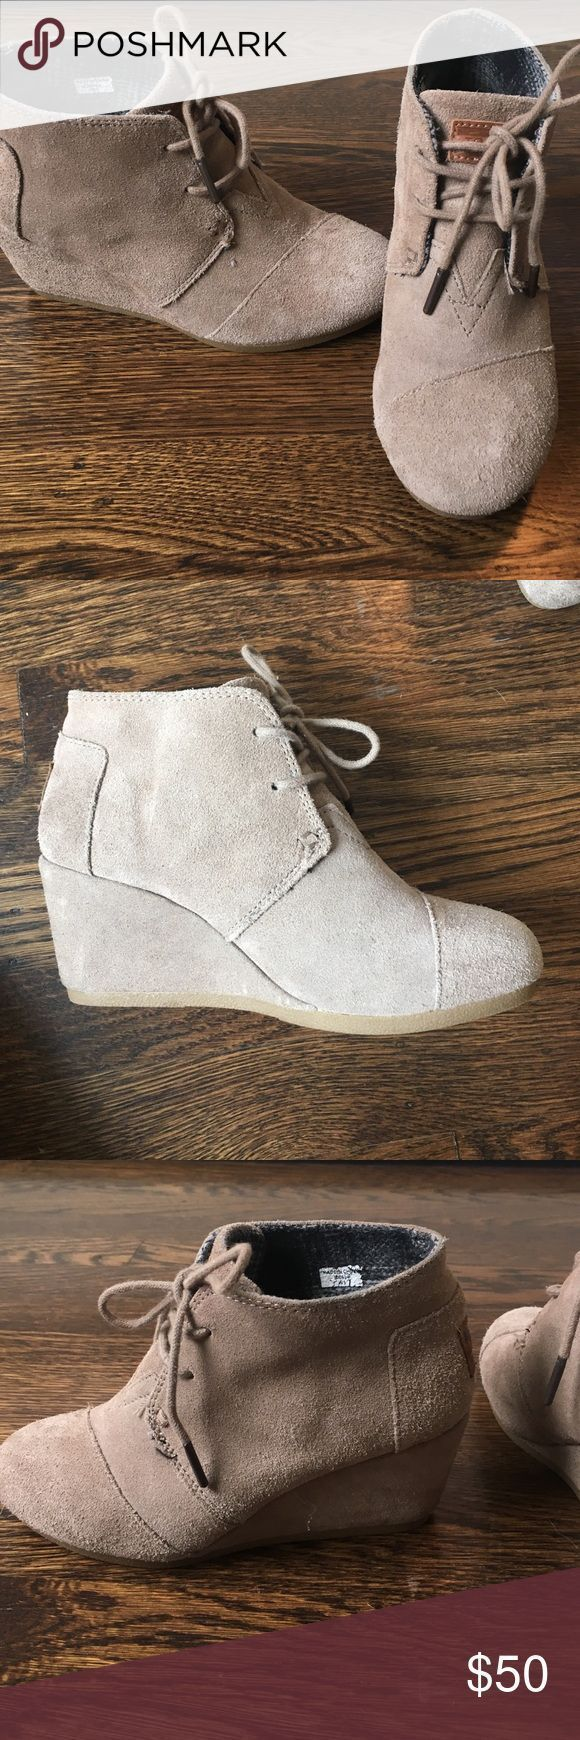 Love these boots, not only are they comfy, but theyre cozy and perfect for winter super cute,suitable for winter prices only $39.